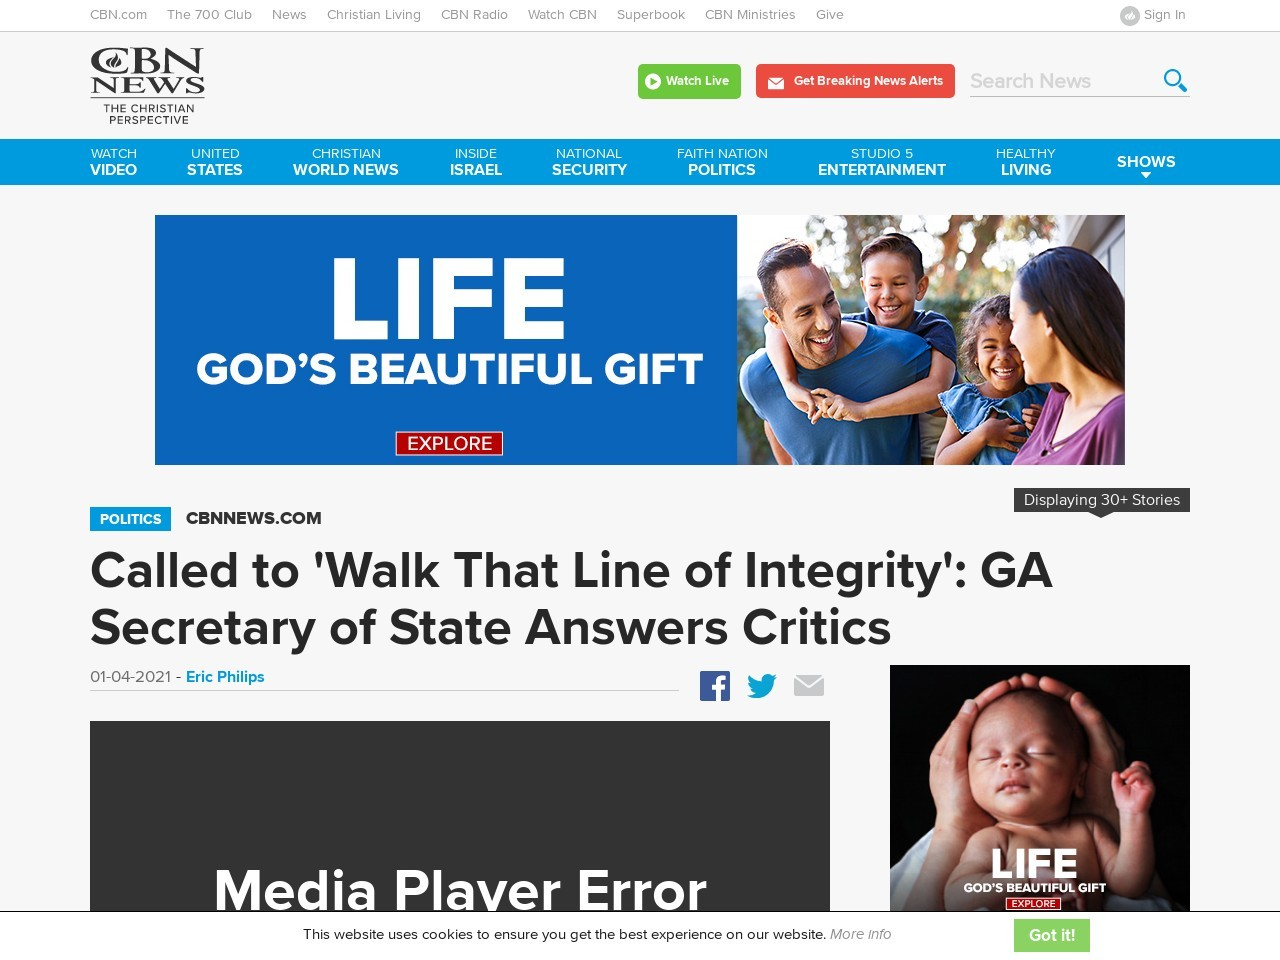 Called to 'Walk That Line of Integrity': GA Secretary of State Answers Critics